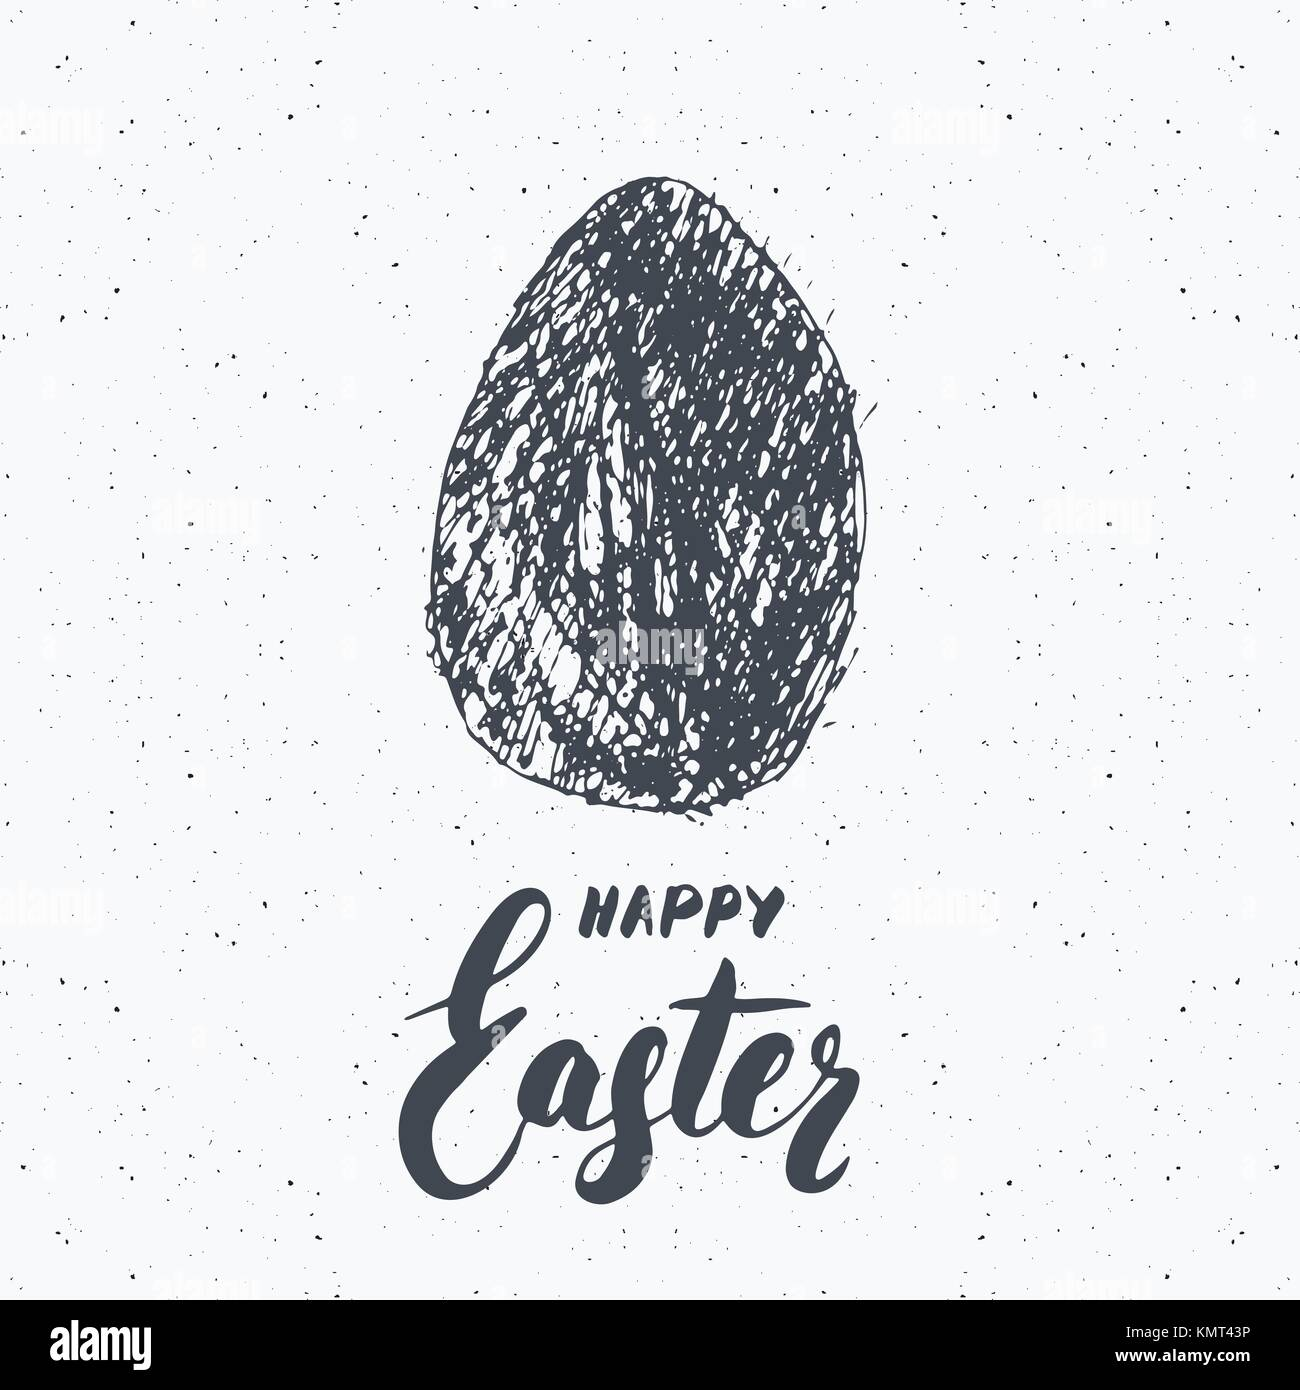 Happy easter hand drawn greeting card with lettering and sketched happy easter hand drawn greeting card with lettering and sketched grunge egg label retro vintage holiday vector illustration kristyandbryce Gallery